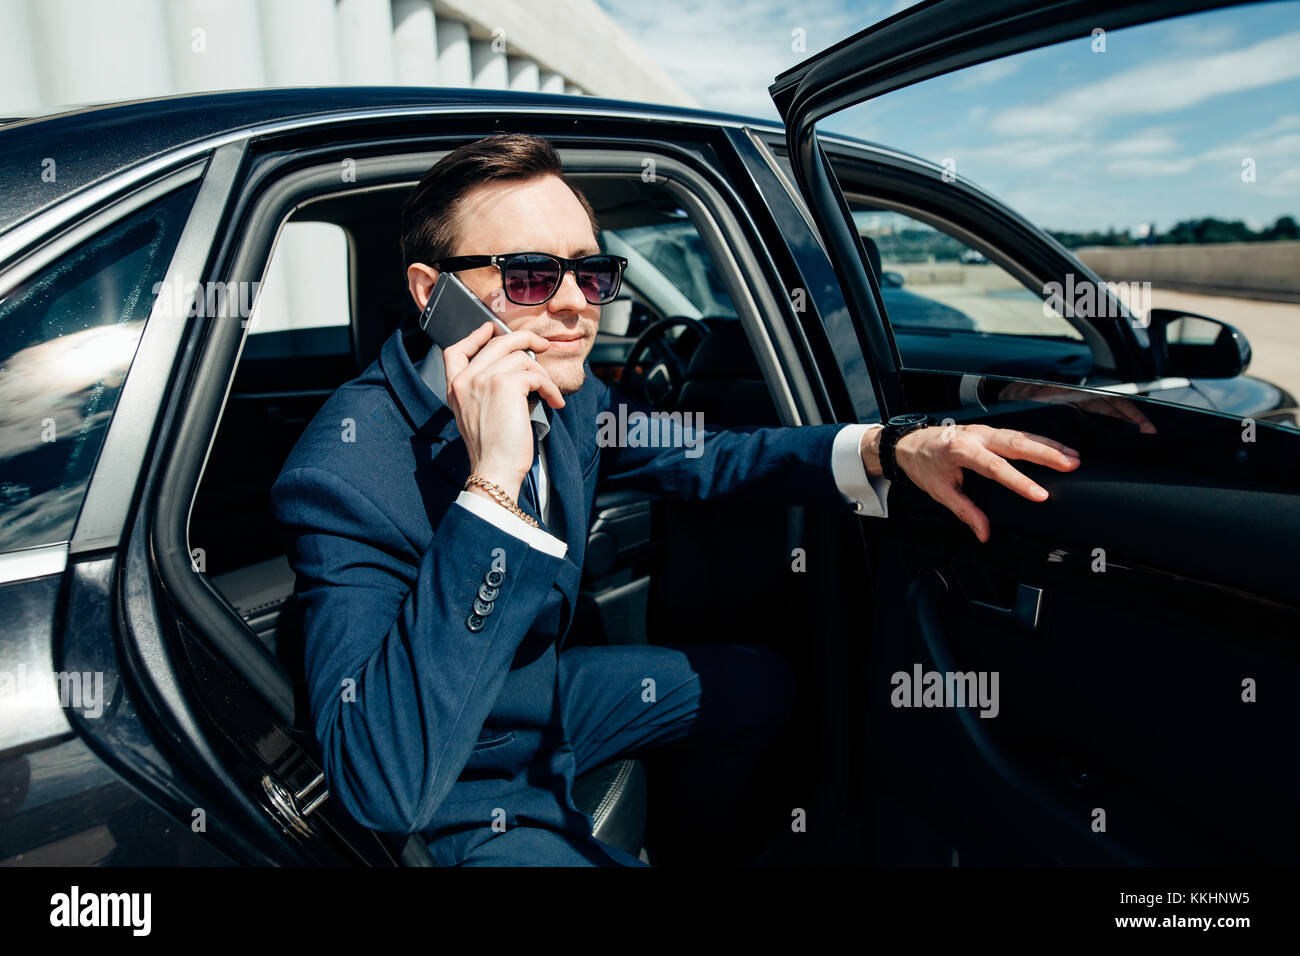 Man in the car reading and phoning - Stock Image